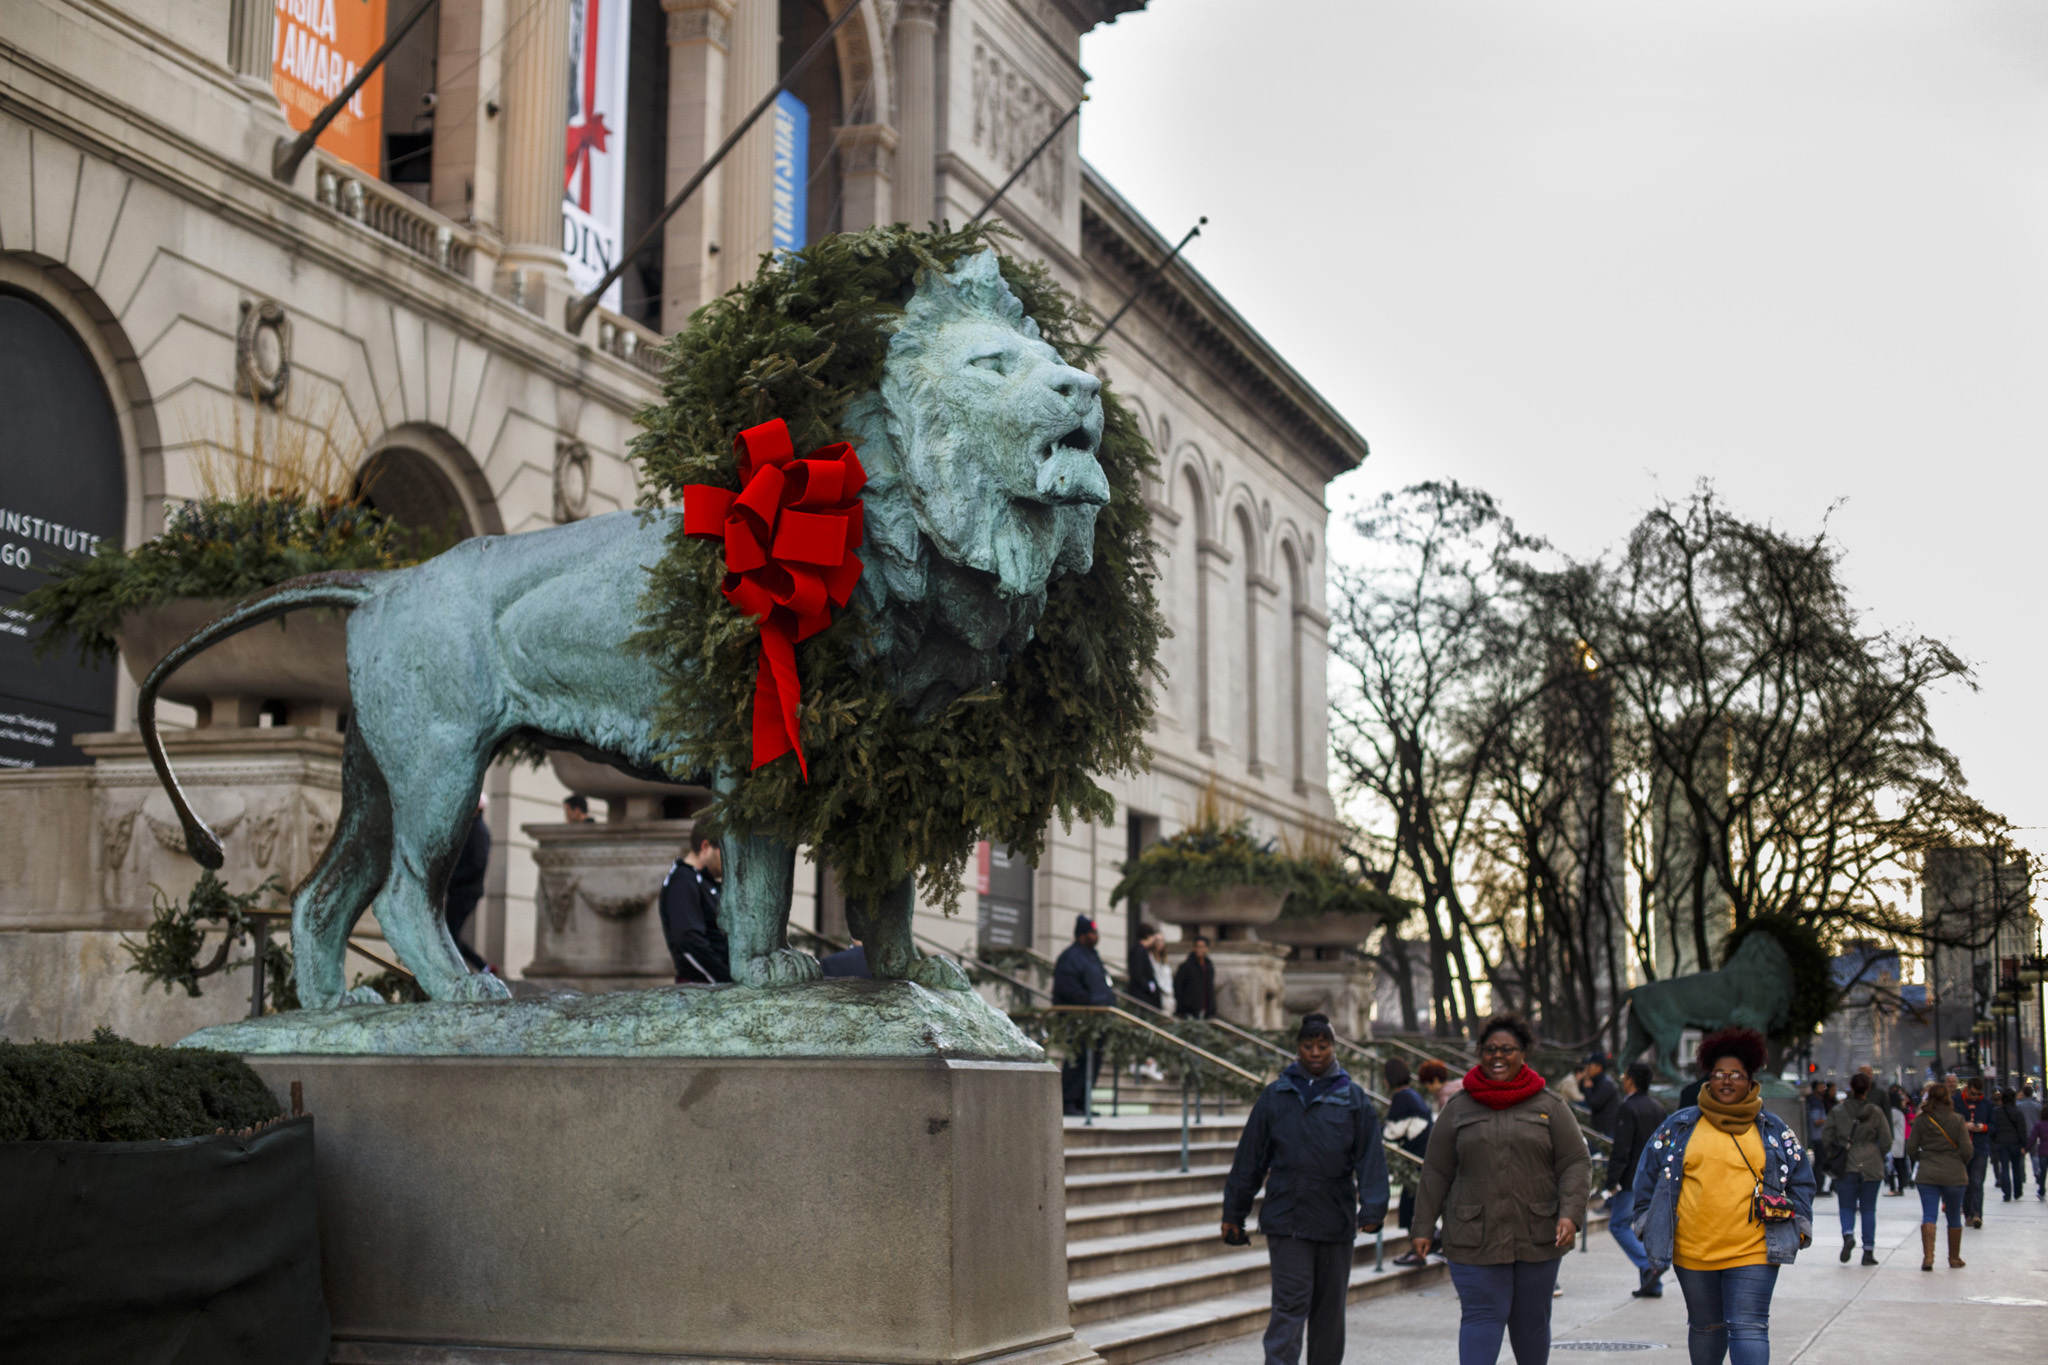 Chicago Holiday Events 2020.November 2020 Events Calendar For Things To Do In Chicago